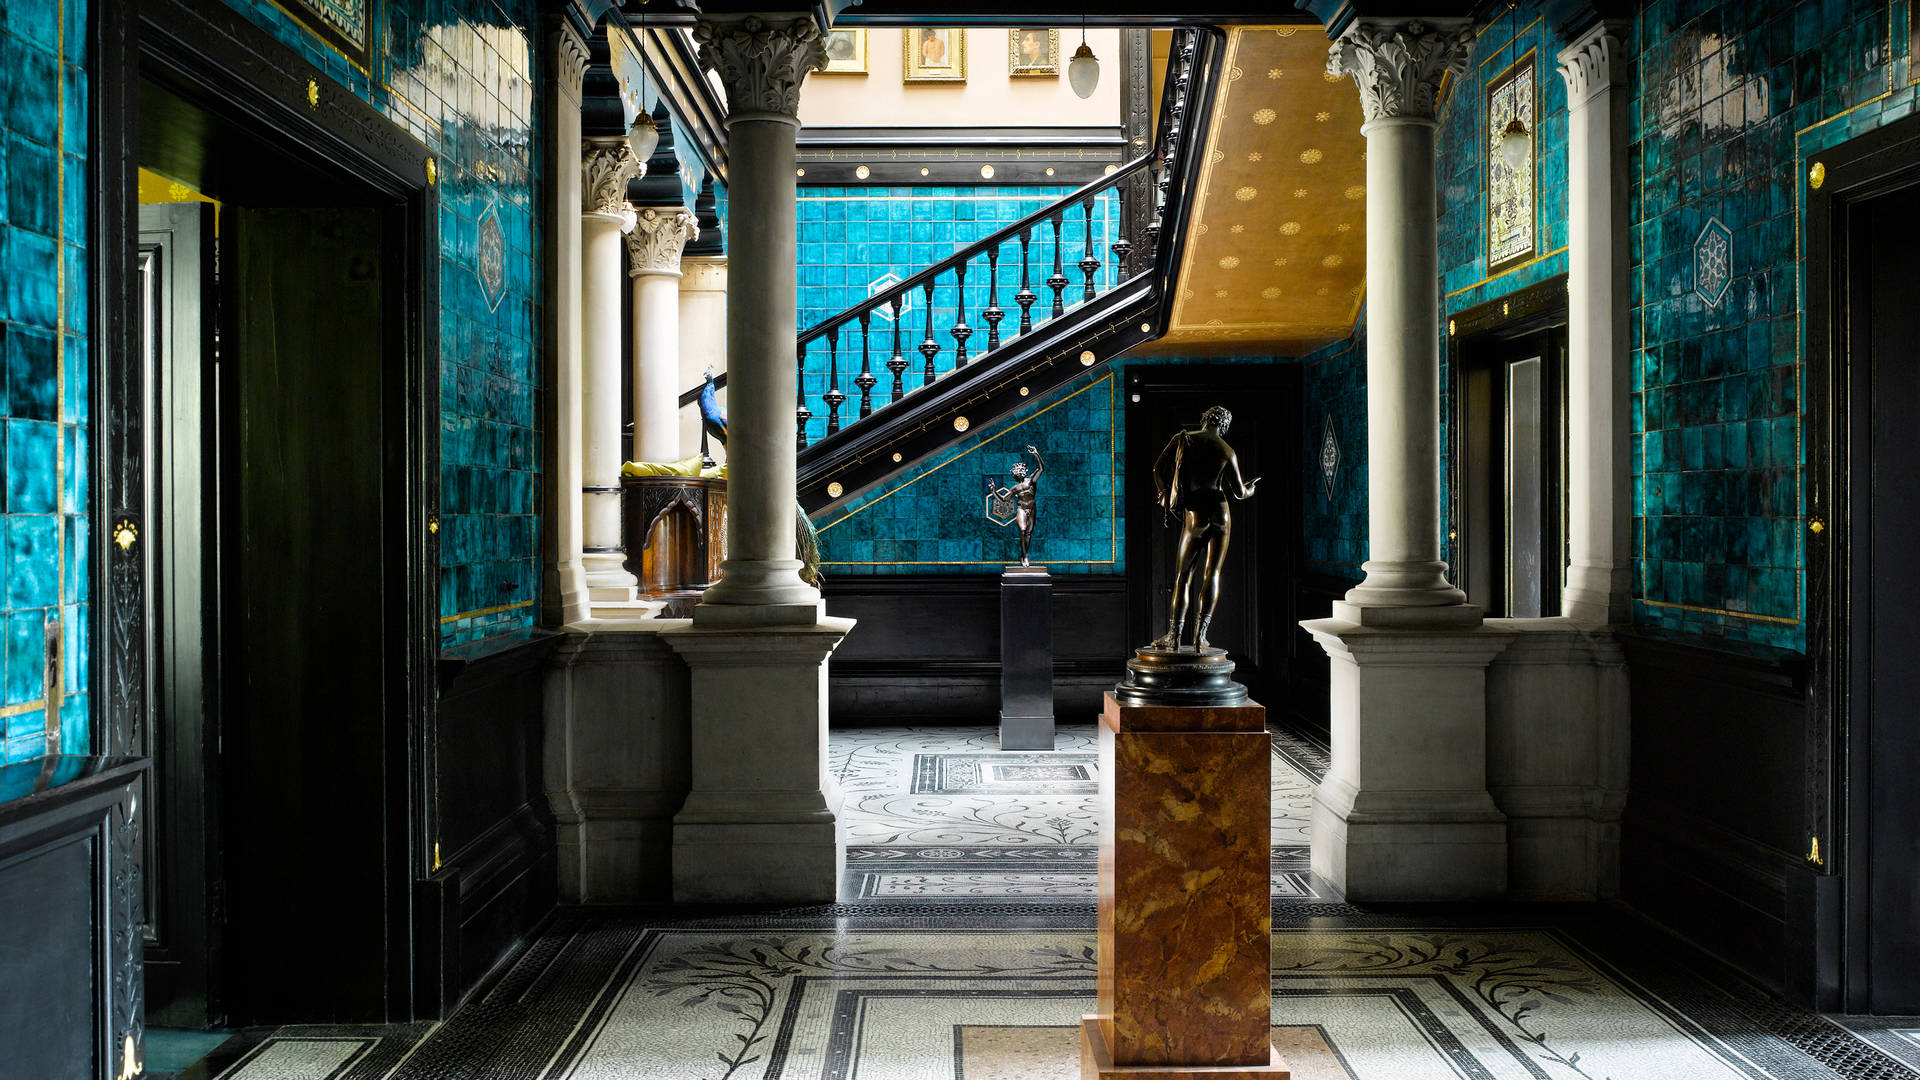 Narcissus Hall at the Leighton House Museum London Jumeirah